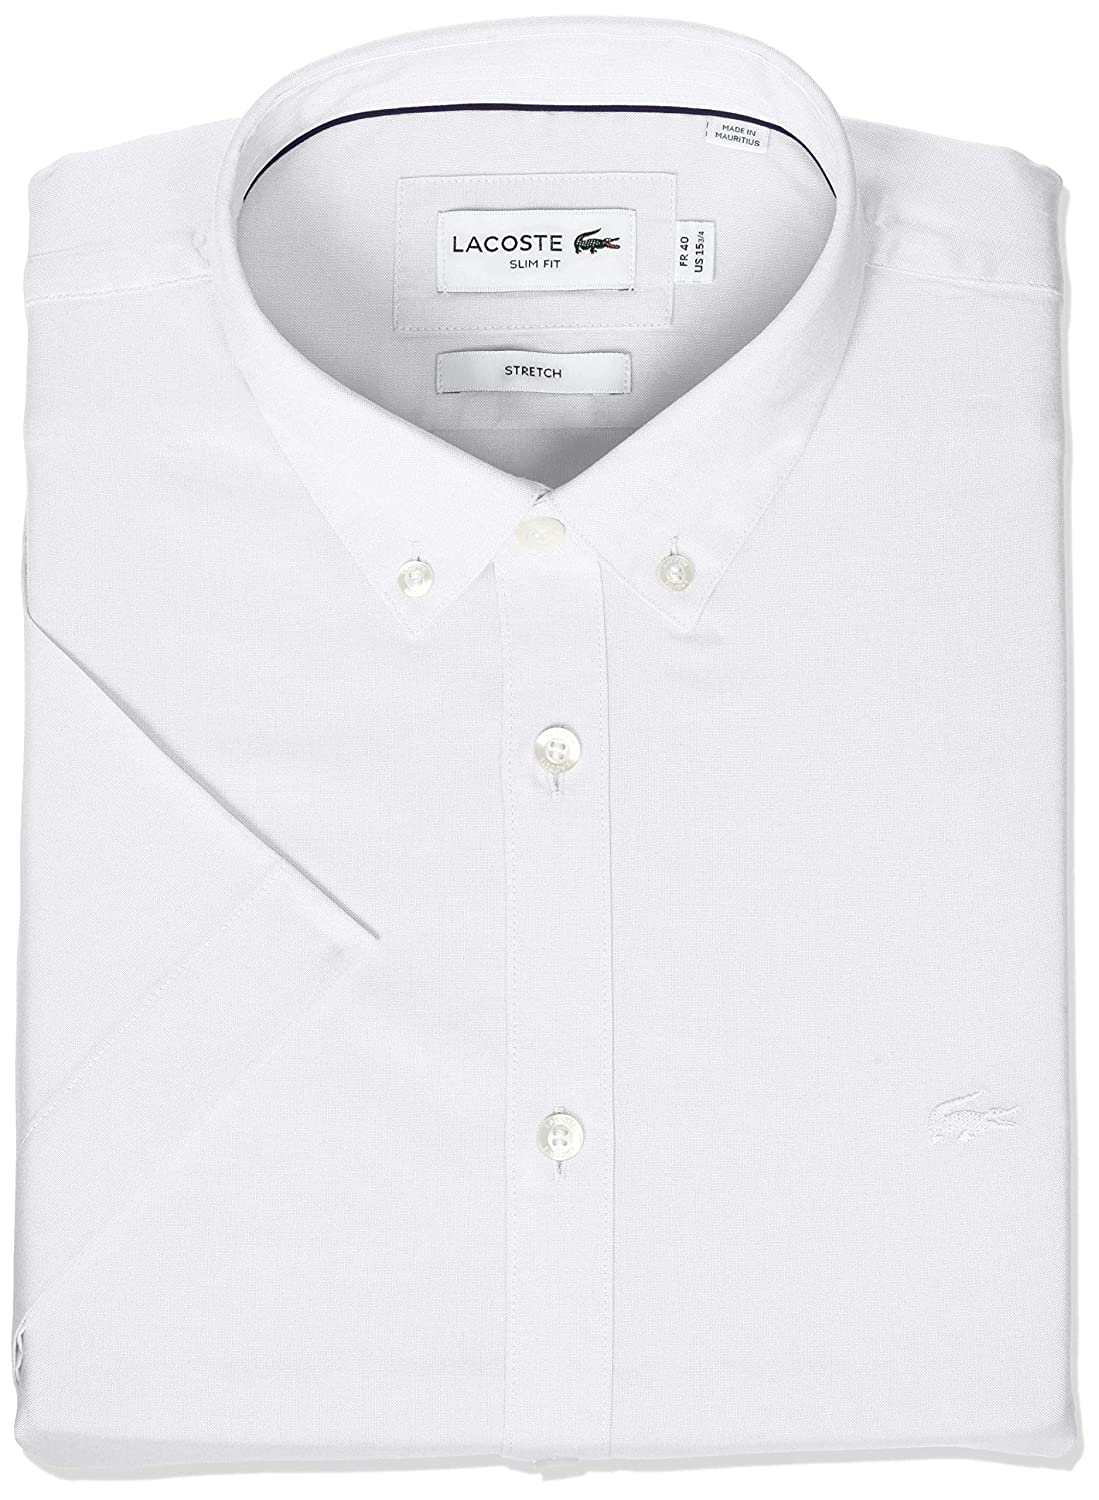 61518d57 Lacoste Men's Short Sleeve Solid Stretch Pinpoint Collar Slim Fit ...